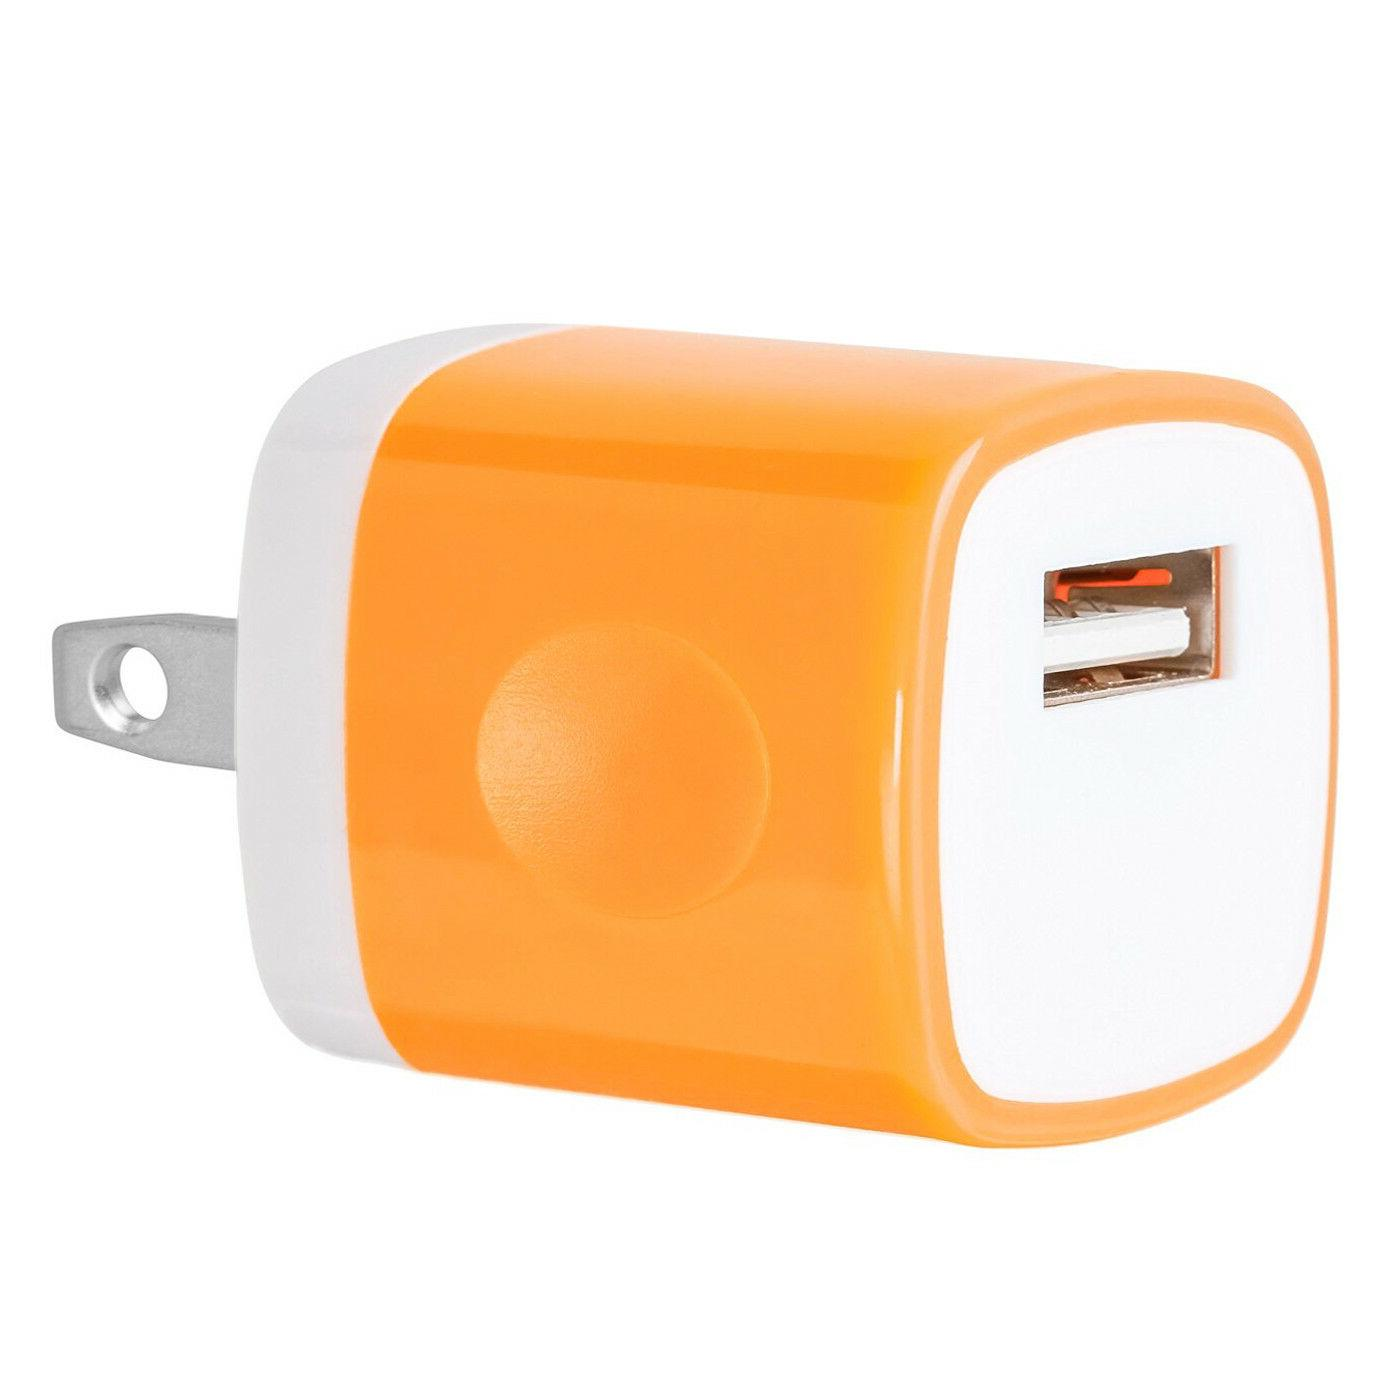 USB Charger AC Home Plug For iPhone 7 8 Samsung LG